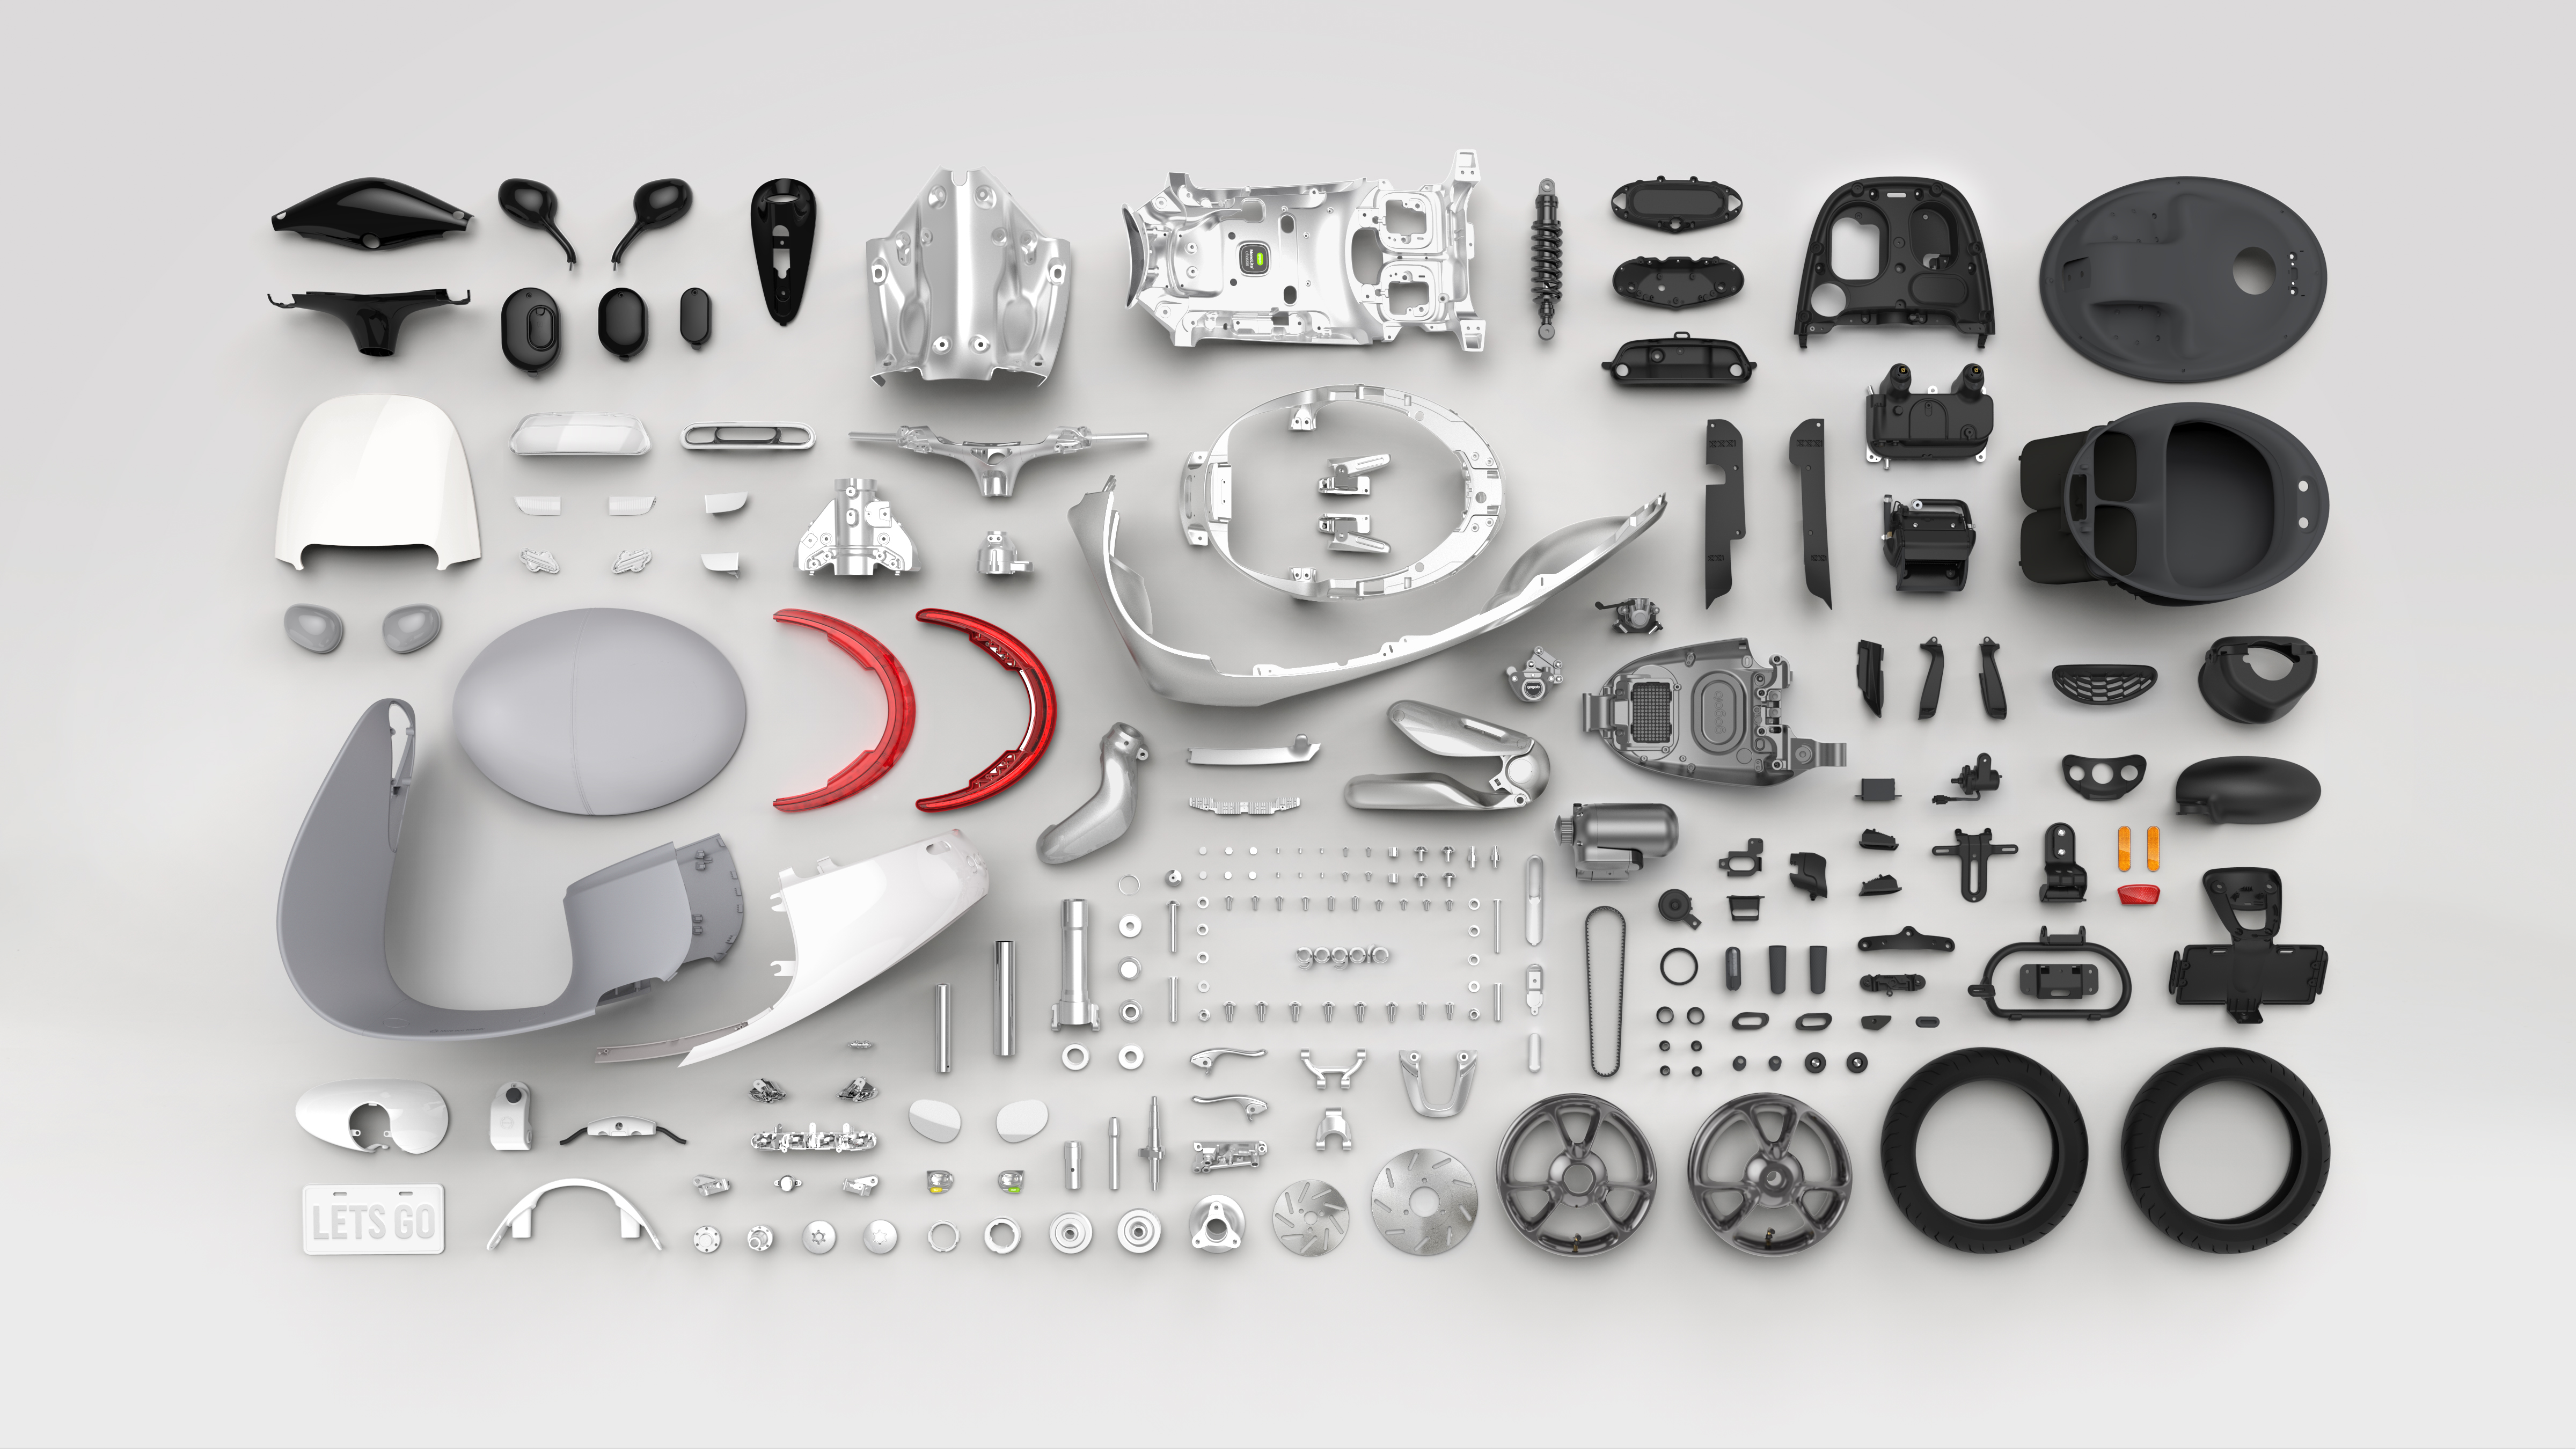 6-all-parts-gogoro-smartscooter-all-parts-on-white.jpg